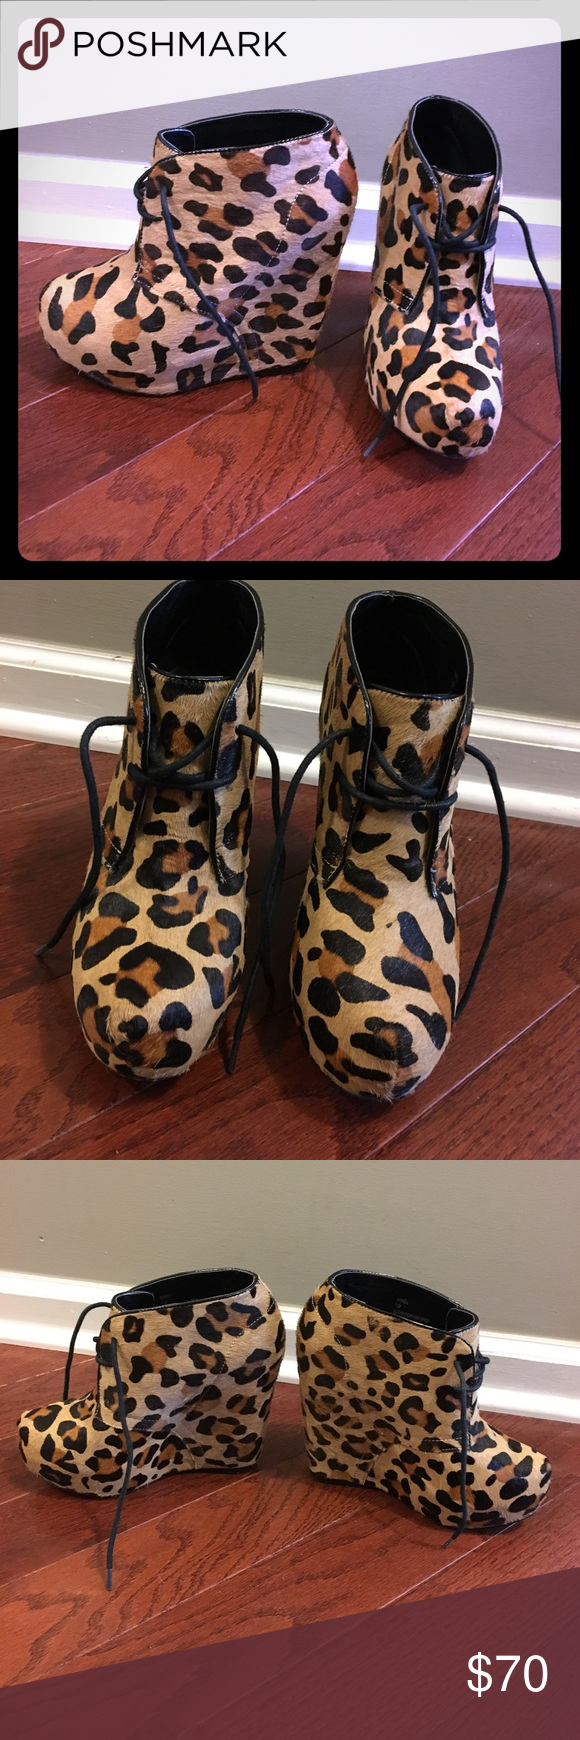 Steve Madden leopard print wedges Super cute pair of annnie-l leopard print wedges in great condition. These were only worn a couple times. Size 7.5 Steve Madden Shoes Wedges